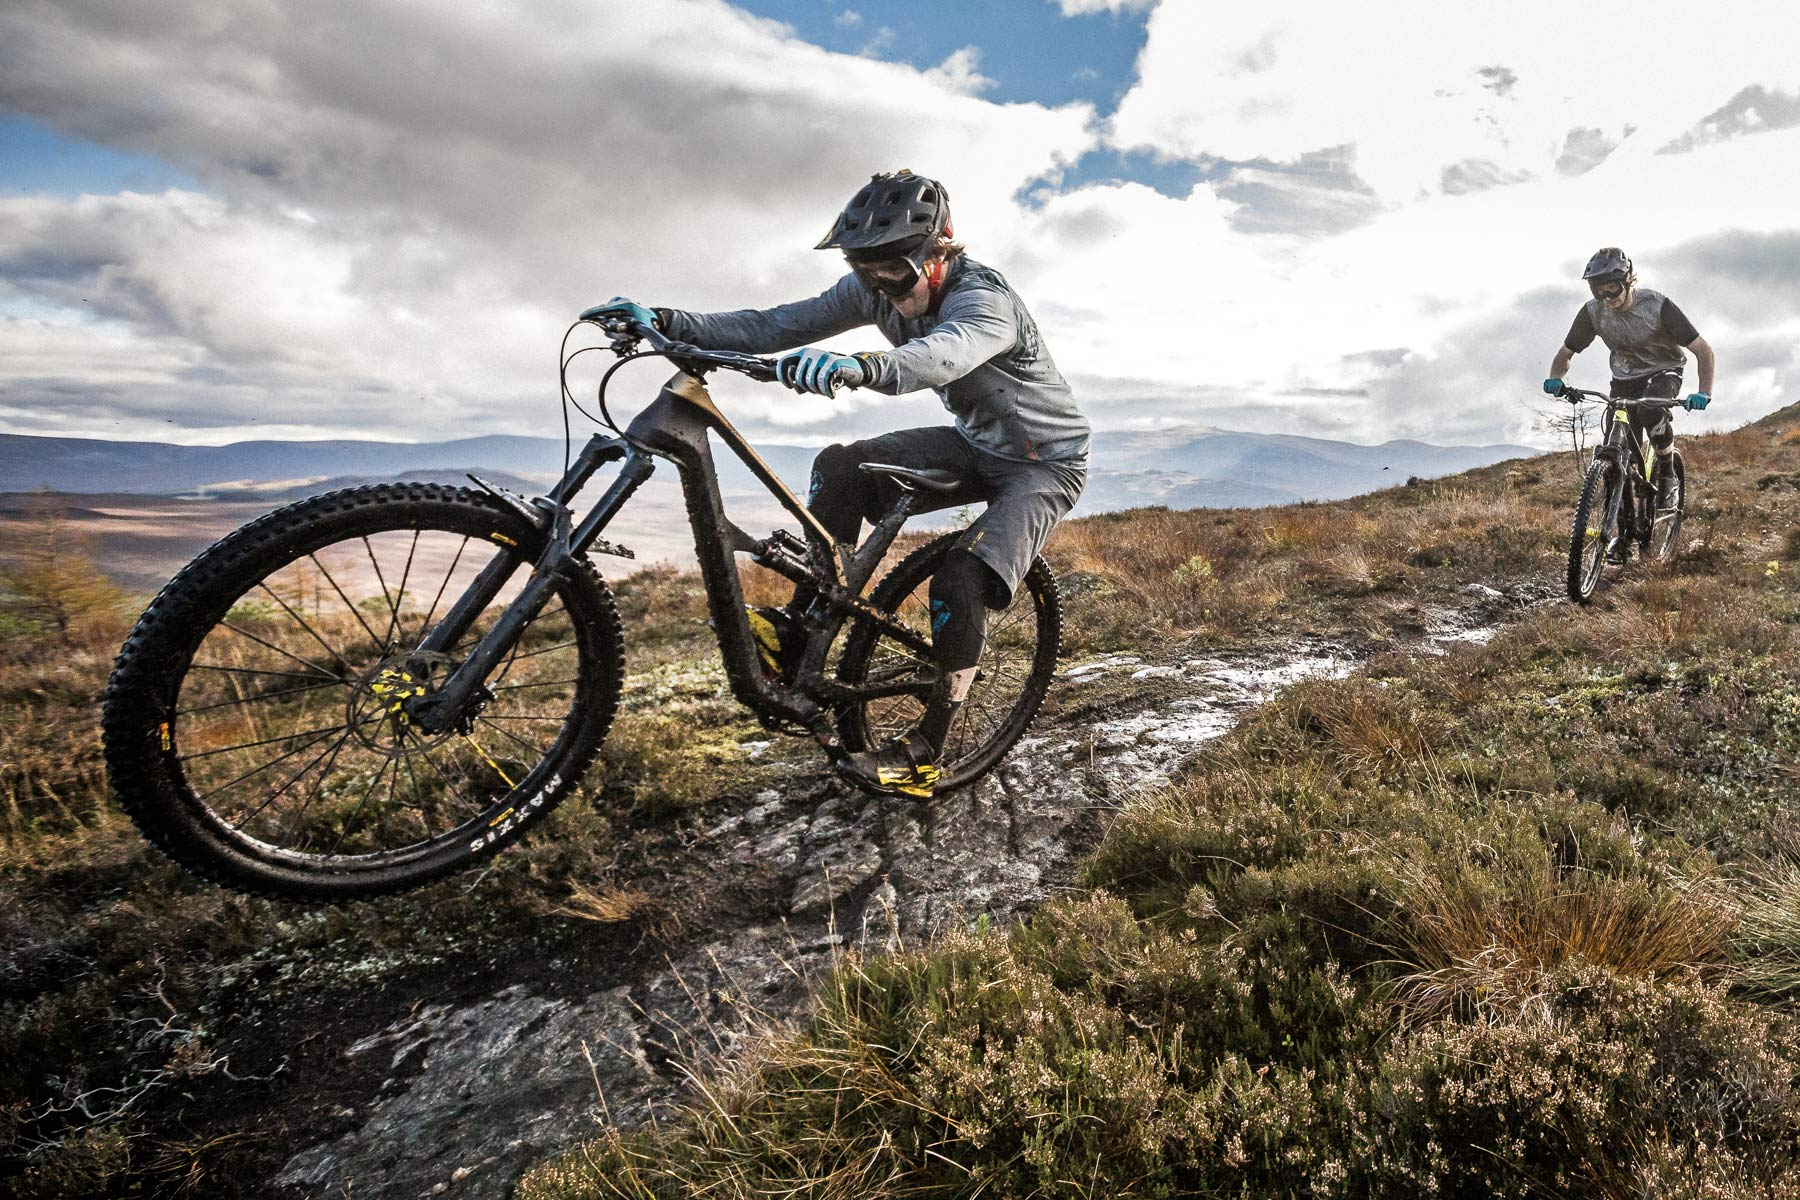 Canyon Spectral CF SLX shreds trail as all-new, more aggressive